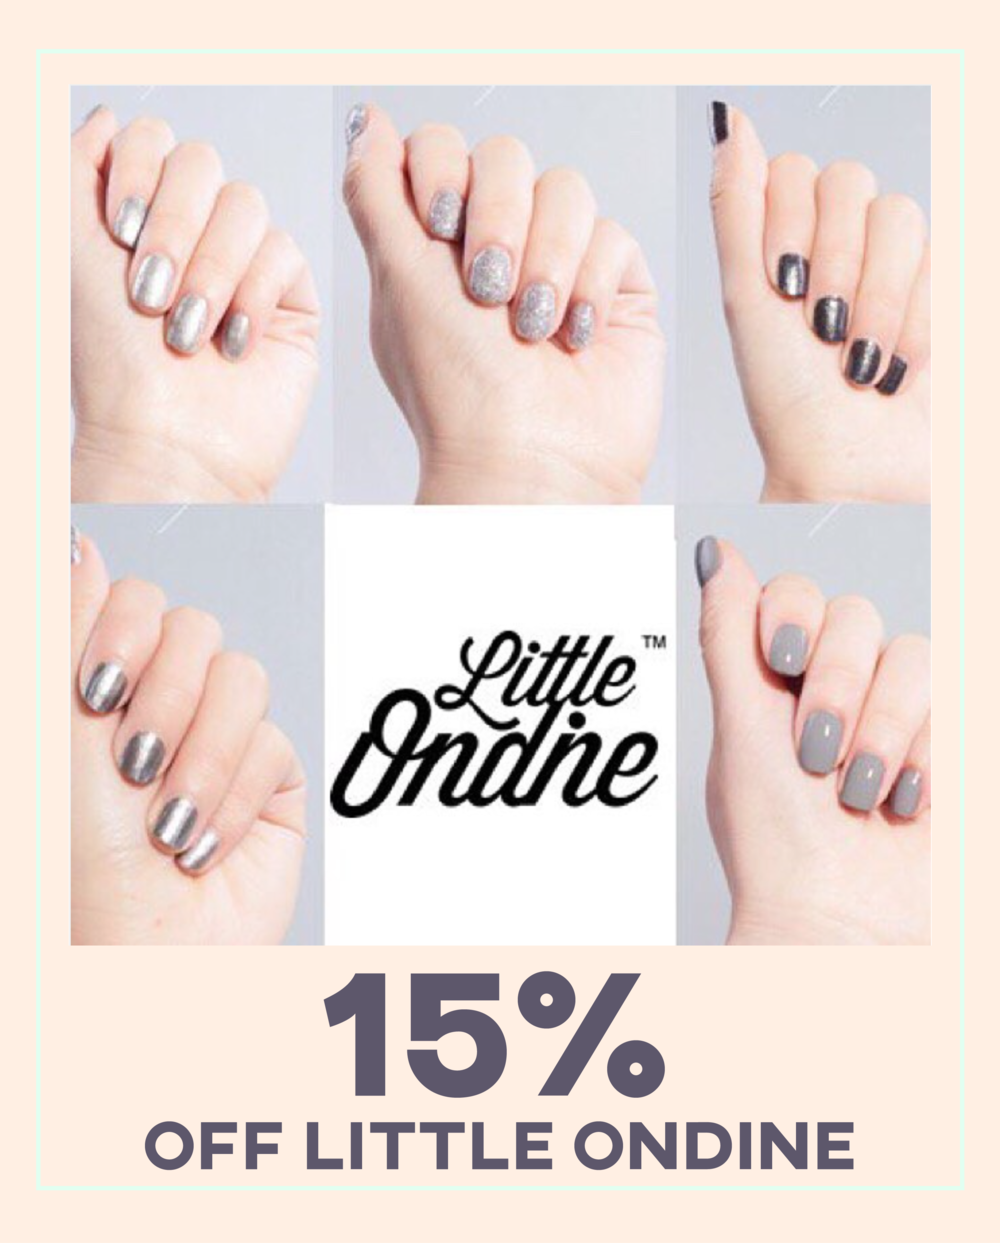 little ondine cruelty free vegan nail varnish discount